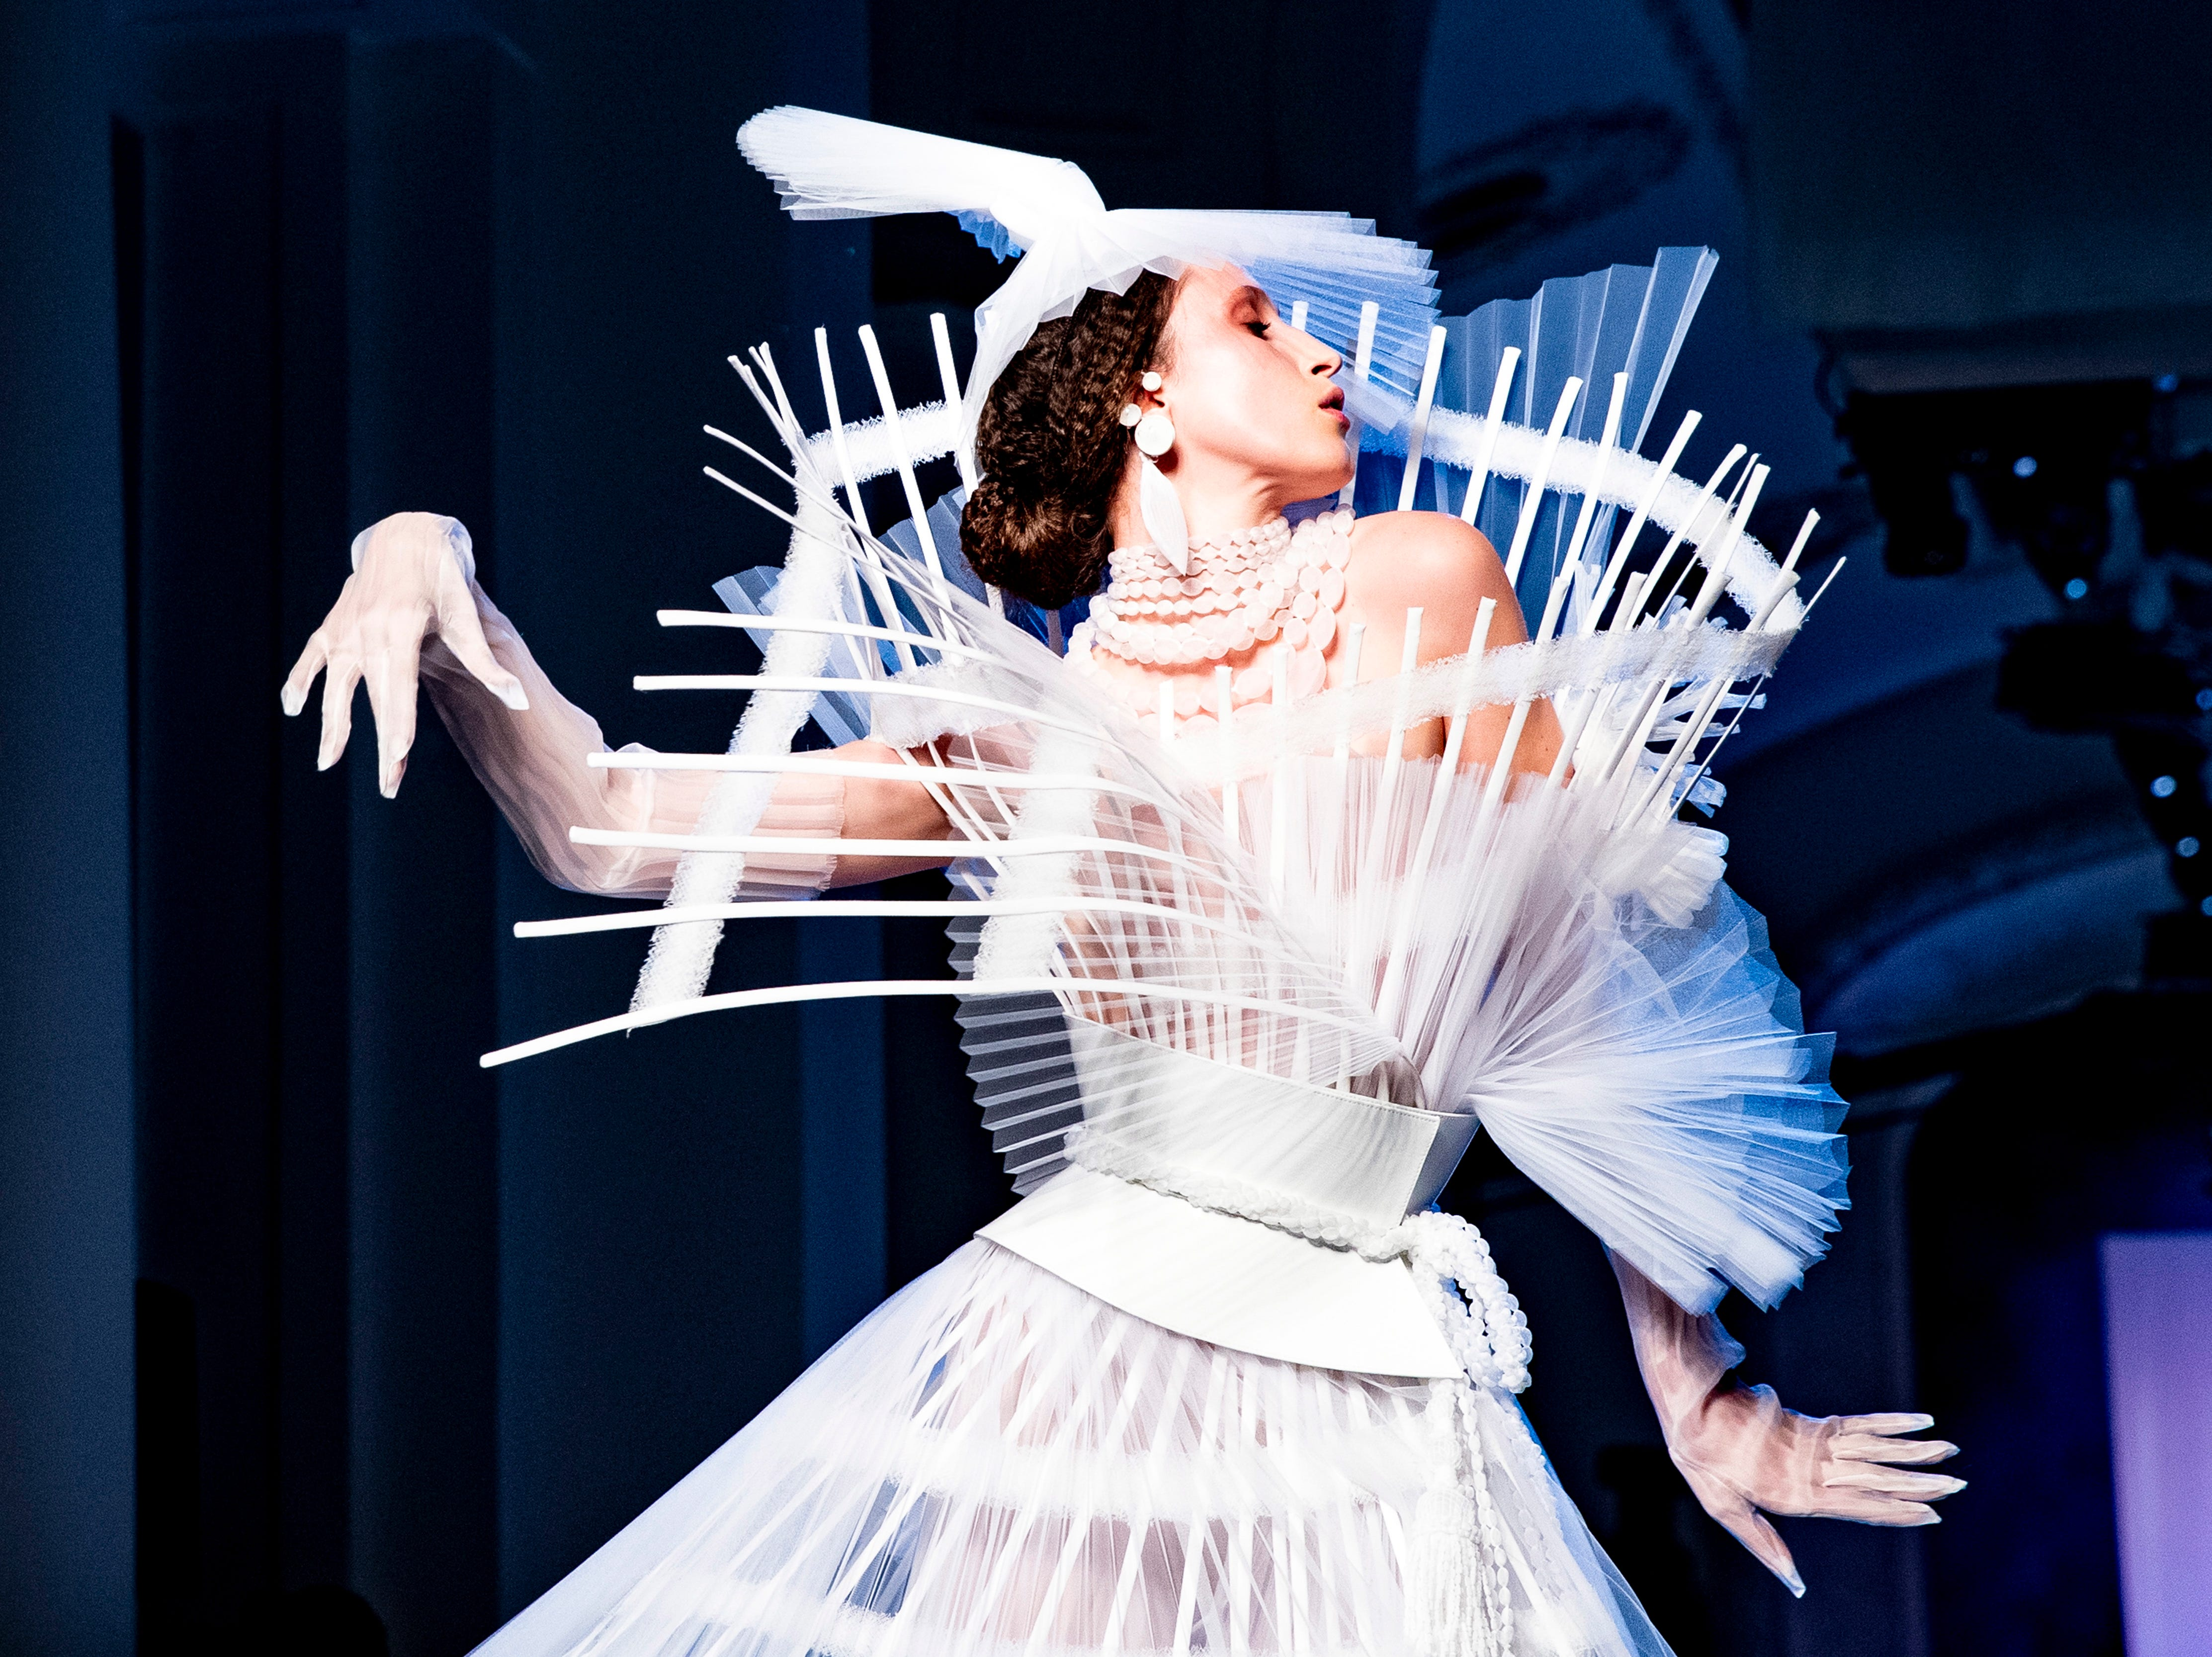 epa07312429 US model Anna Cleveland presents a creation from the Spring/Summer 2019 Haute Couture collection by French designer Jean-Paul Gaultier during the Paris Fashion Week, in Paris, France, 23 January 2019. The presentation of the Haute Couture collections runs from 21 to 24 January.  EPA-EFE/ETIENNE LAURENT